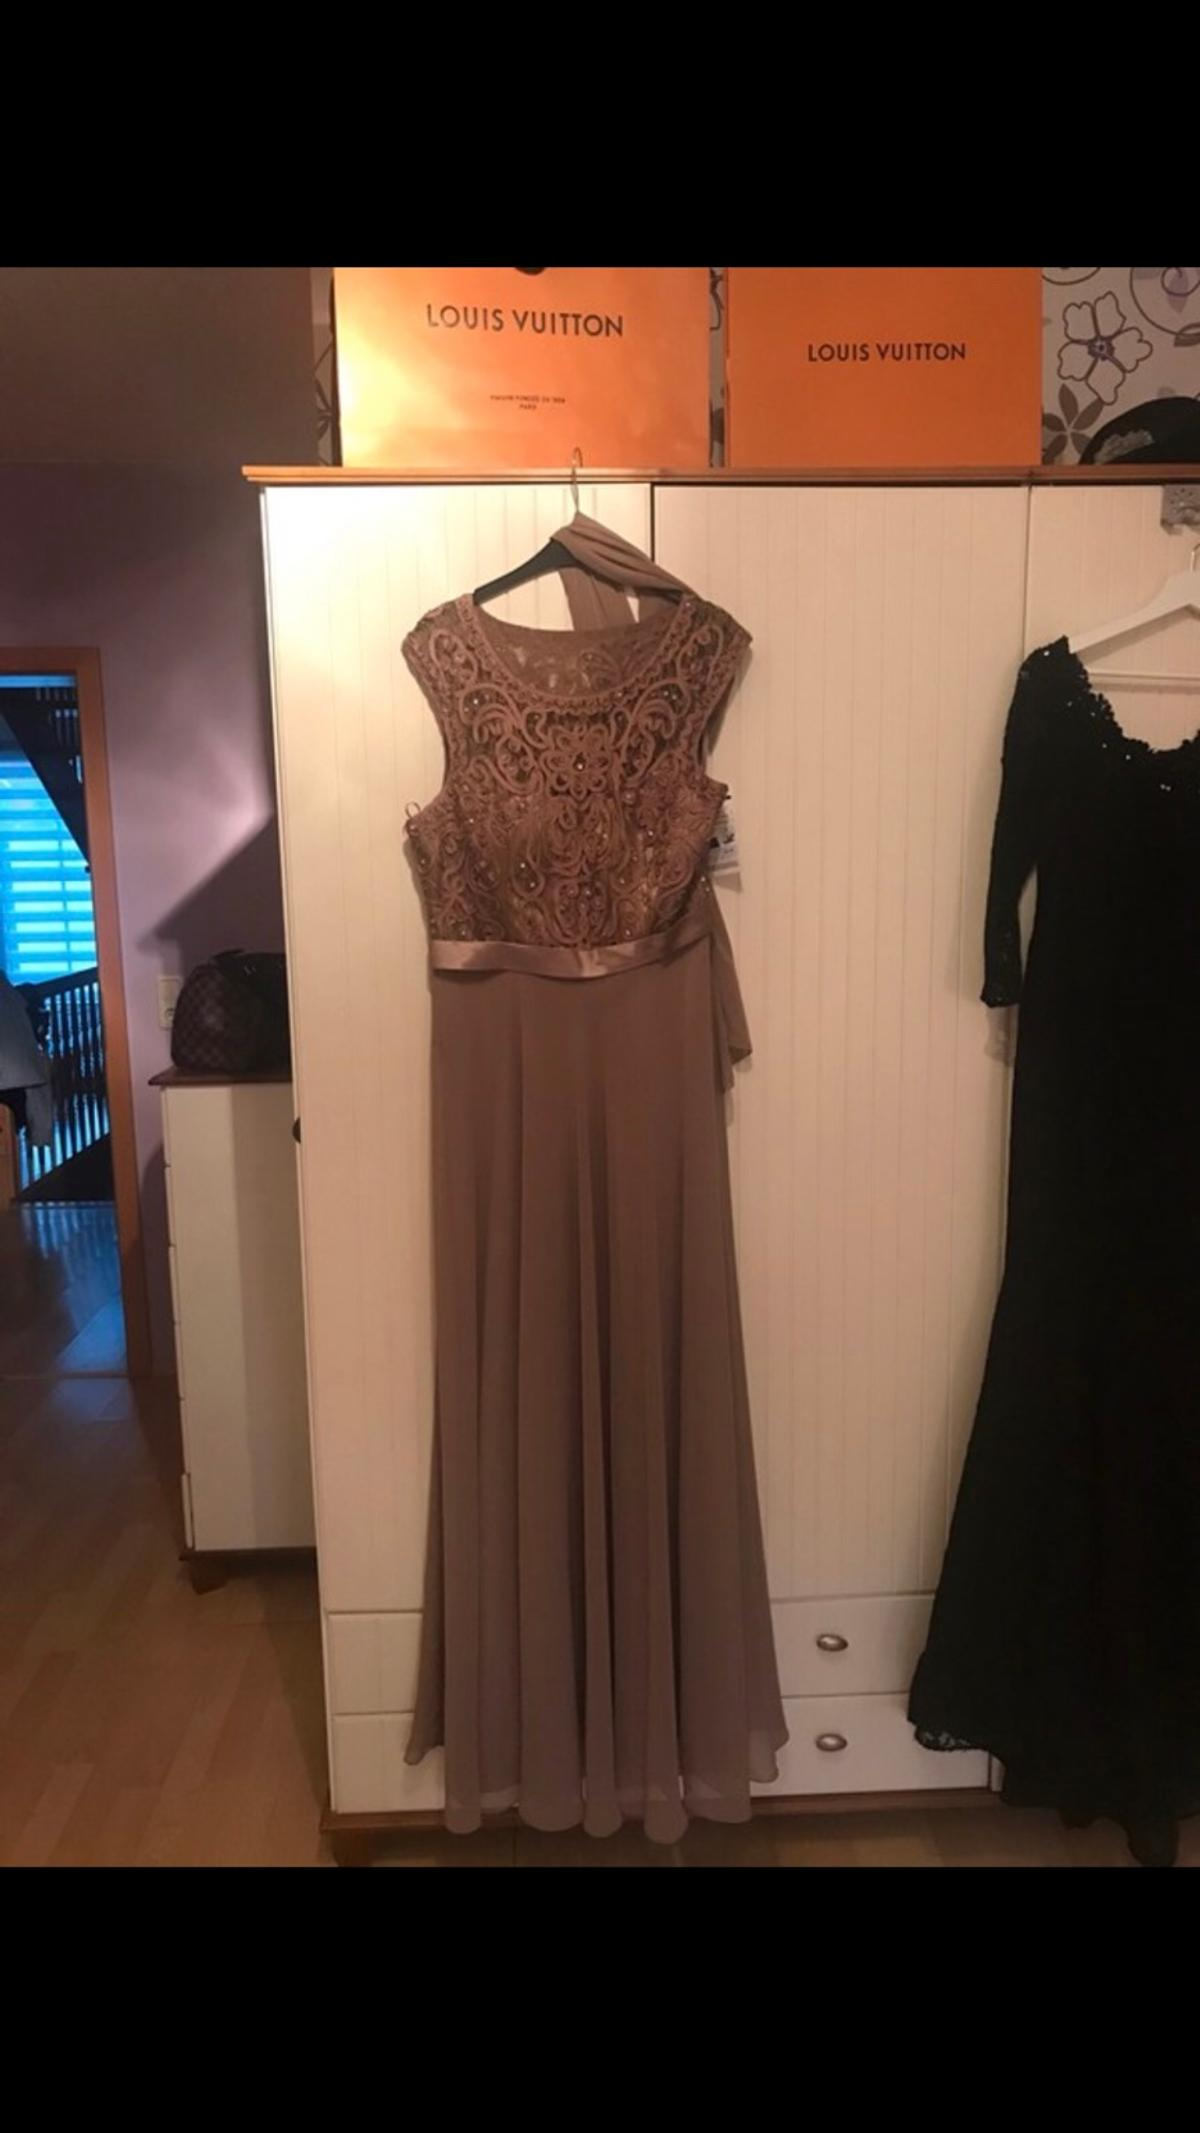 beiges abendkleid in 38226 salzgitter for €70.00 for sale